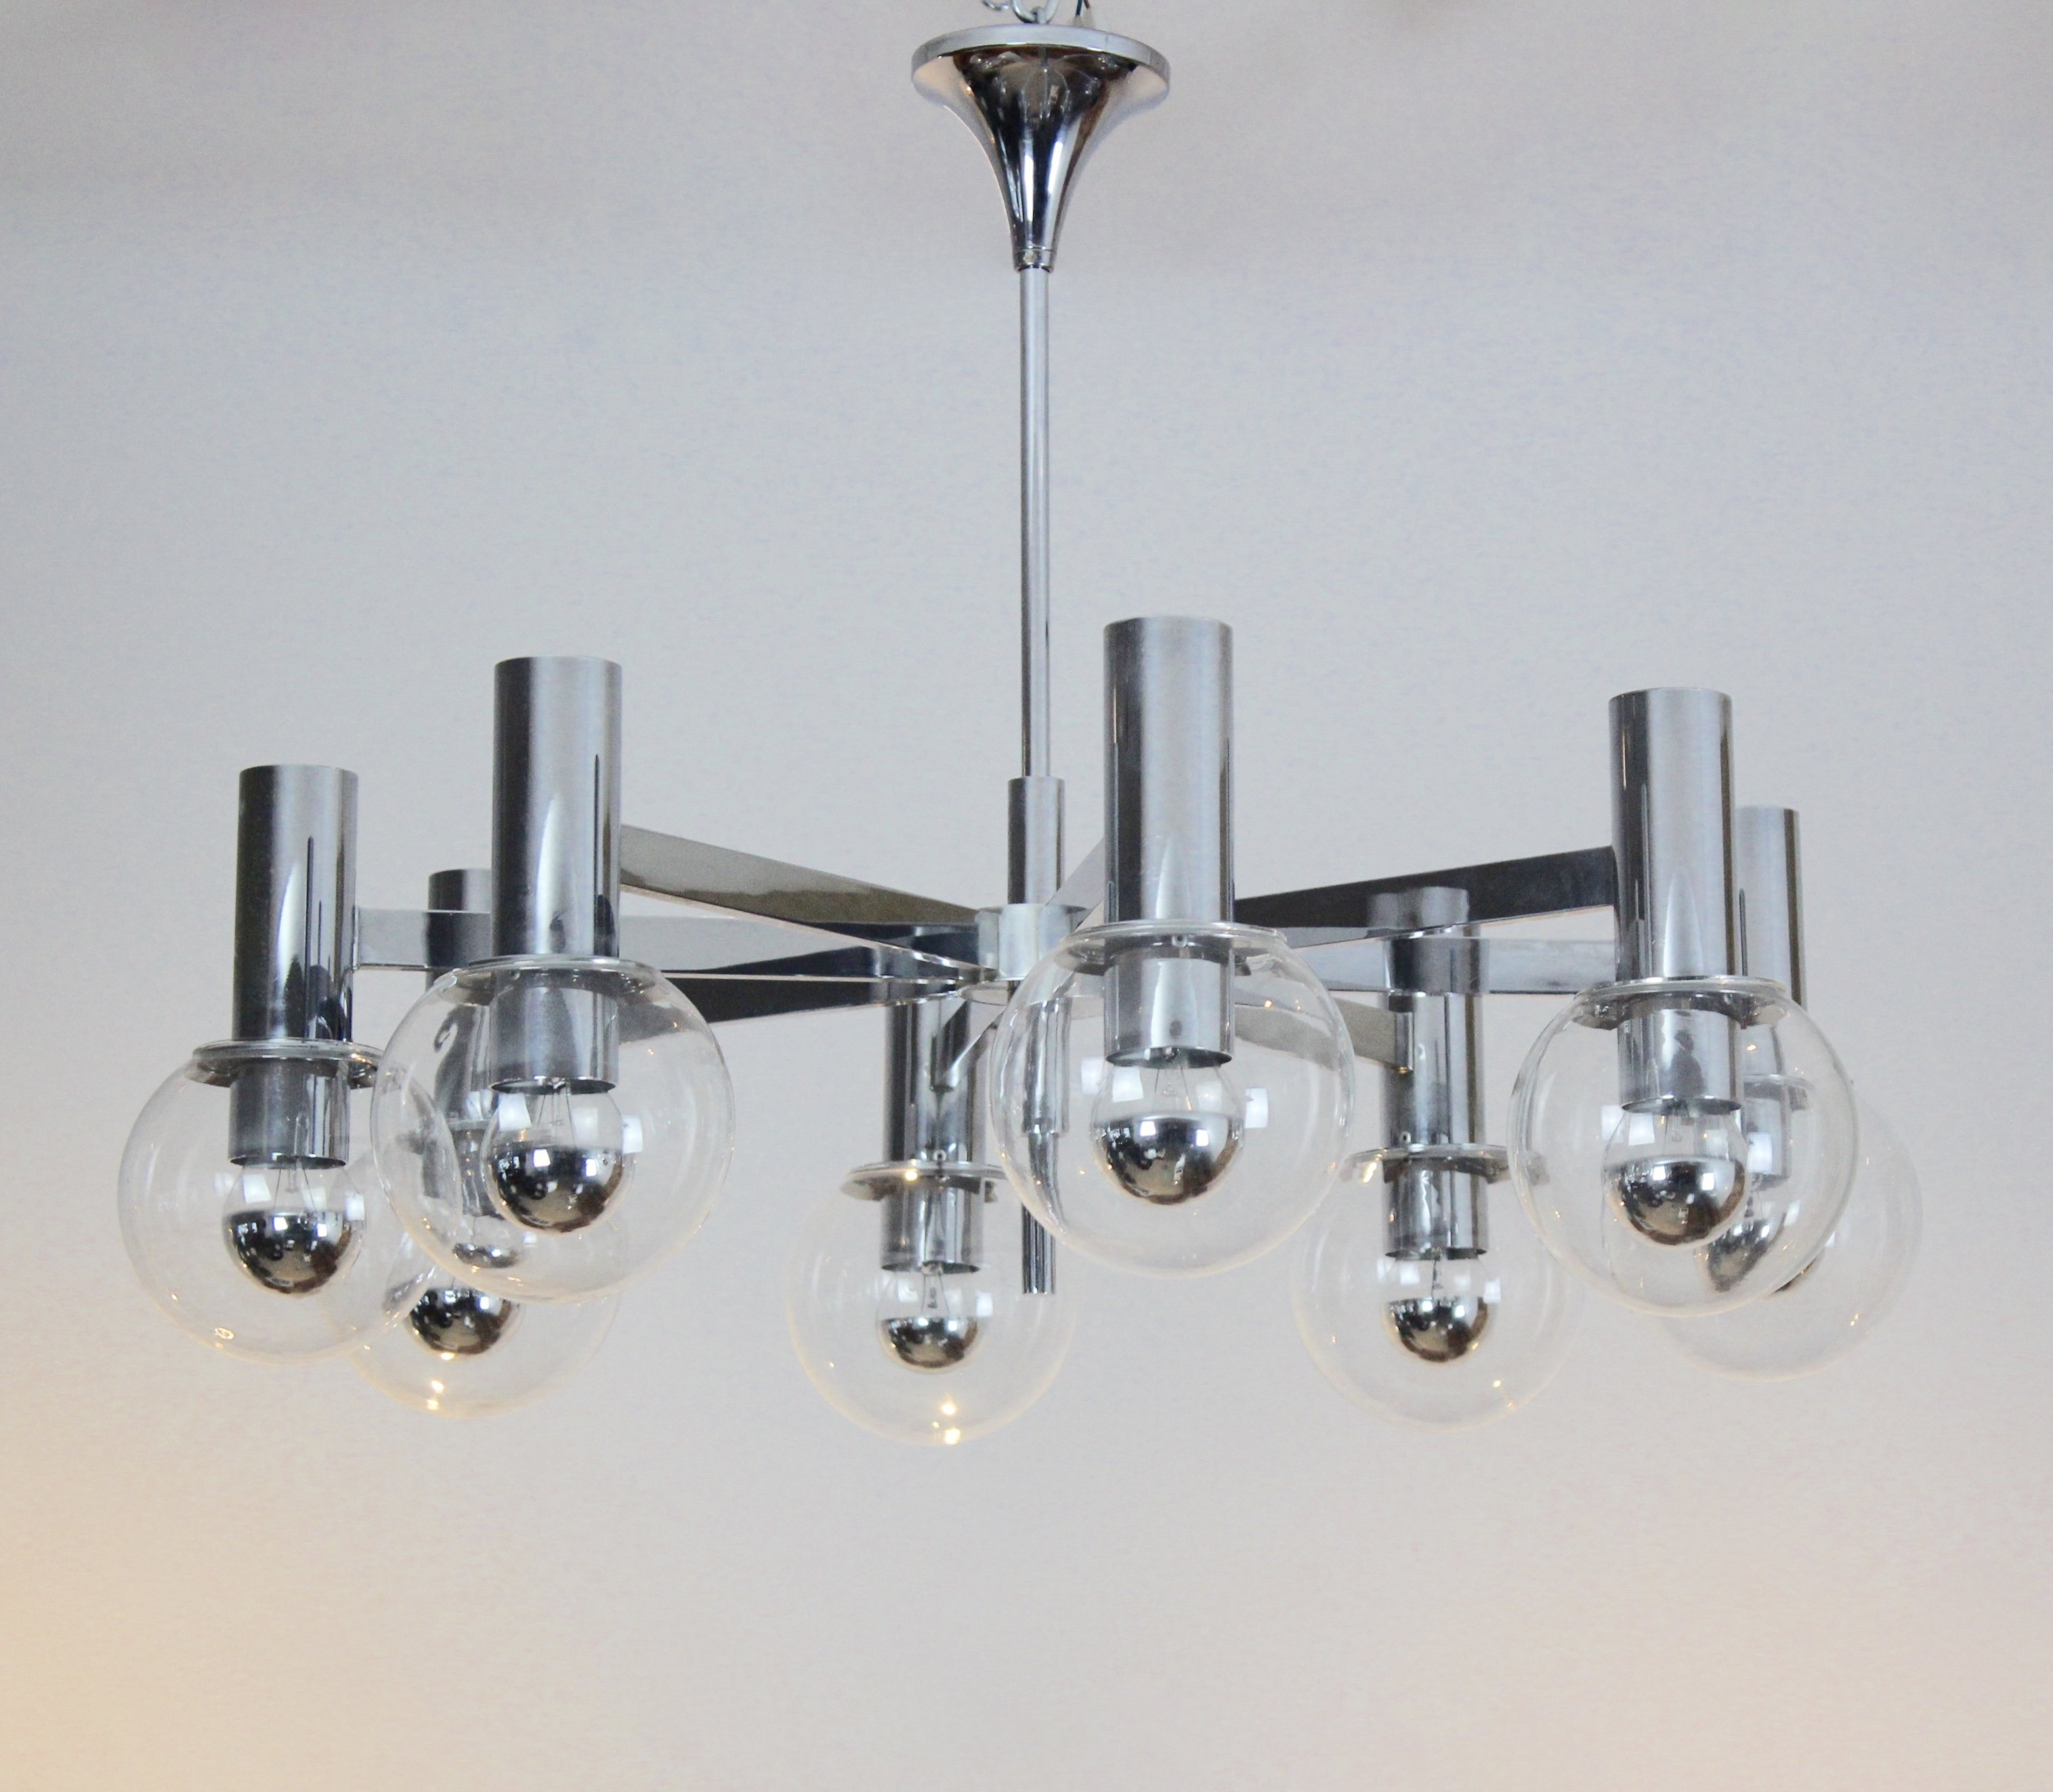 Leuchten Bilder Elegant Chrome & Glass Chandelier By Kaiser Leuchten, Germany | #96553